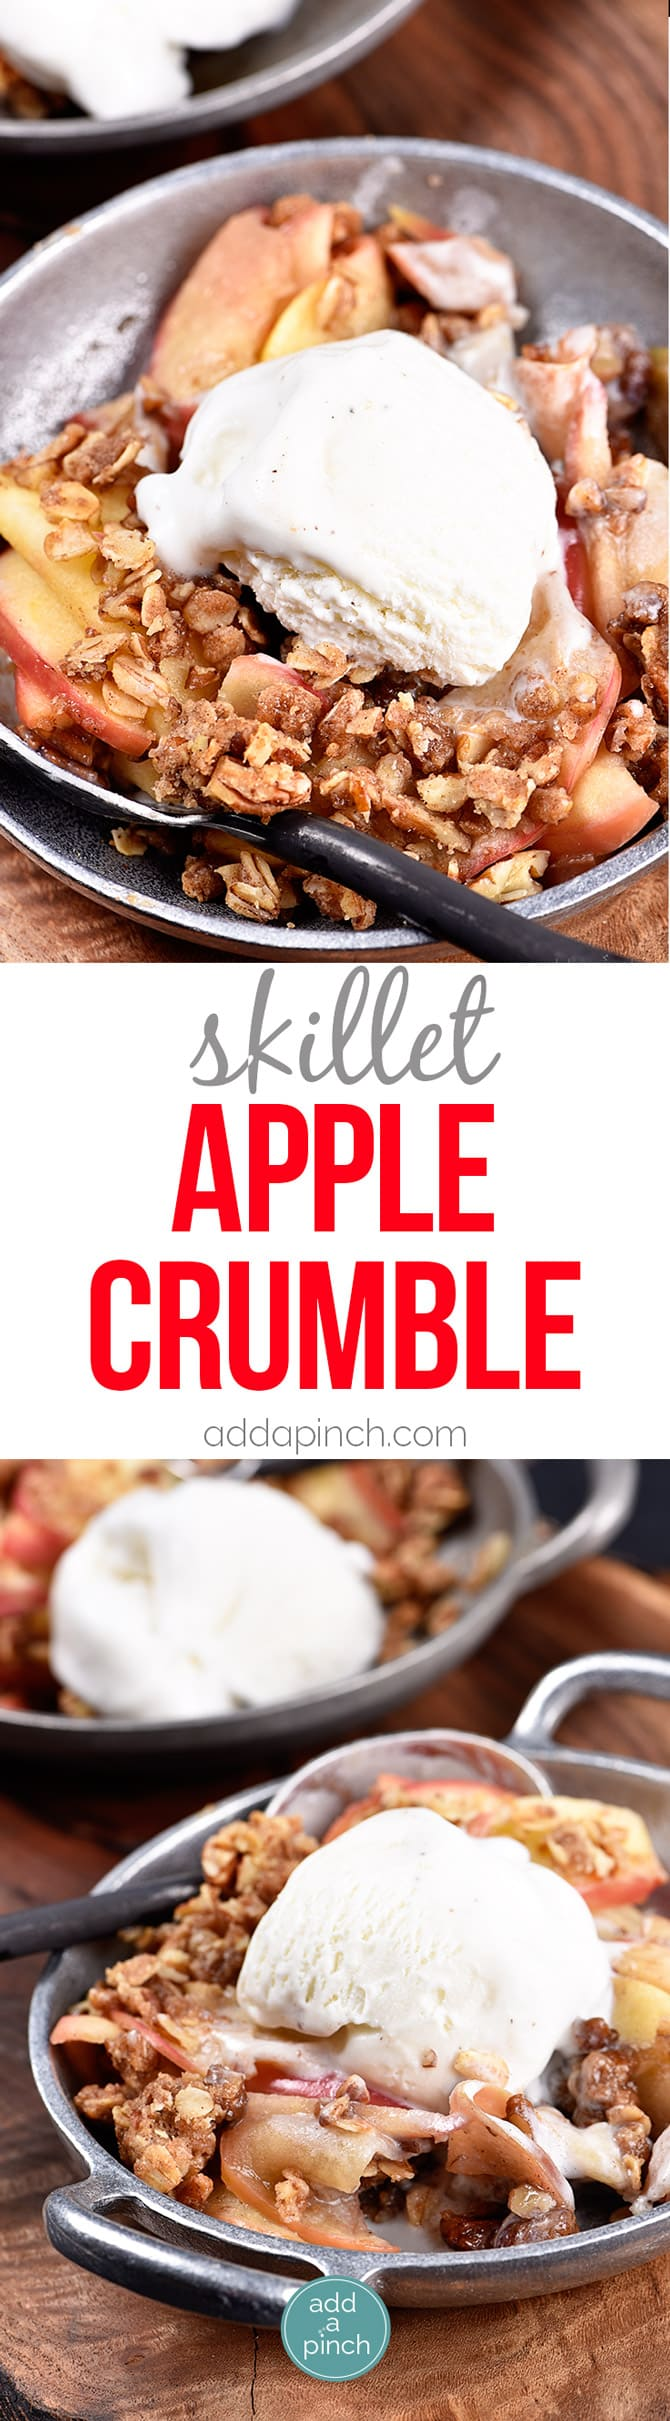 Skillet Apple Crumble Recipe - Skillet Apple Crumble recipe makes a ...